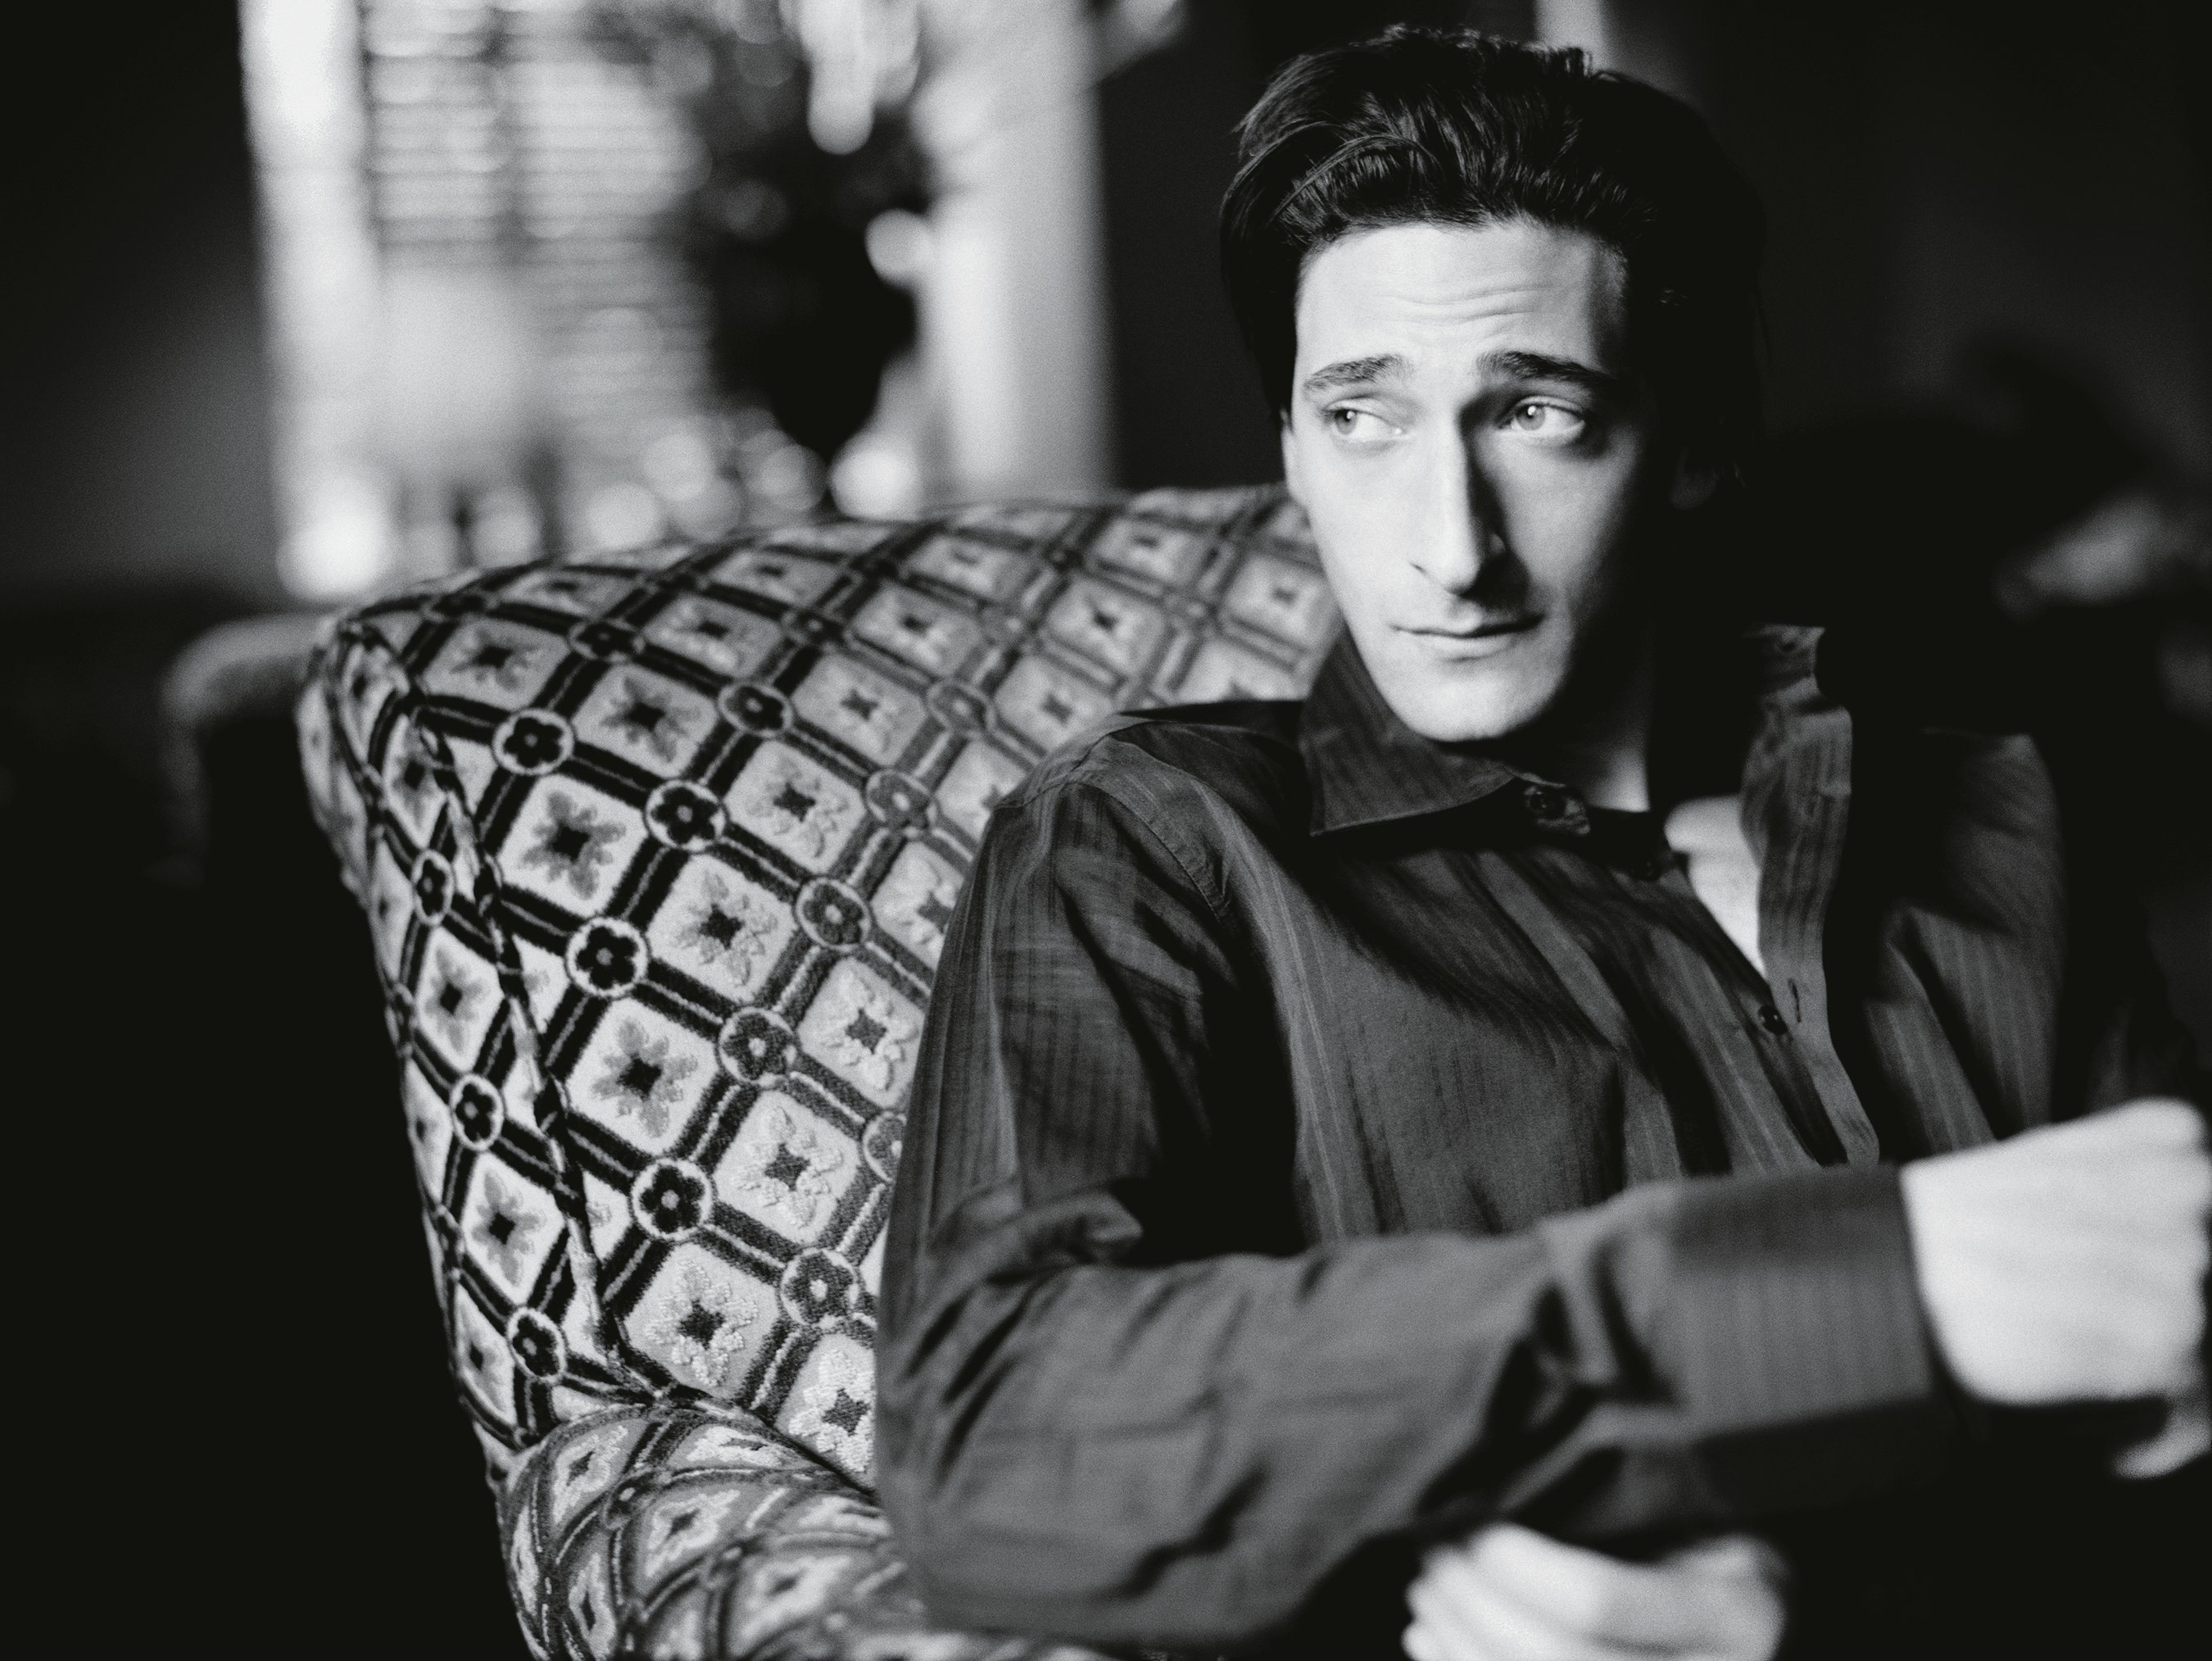 """The most treasured memory Raccuglia has from photographing Adrien Brody was the conversation not about his Academy Award nomination for The Piano, but about his mother, Hungarian photographer Sylvia Plachy. """"He was telling me about the movie he just did, and how he wanted to get some photos shot before the awards,"""" Raccuglia says. """"I was like 'Oh, that's great … so! Tell me more about your mom.'"""""""